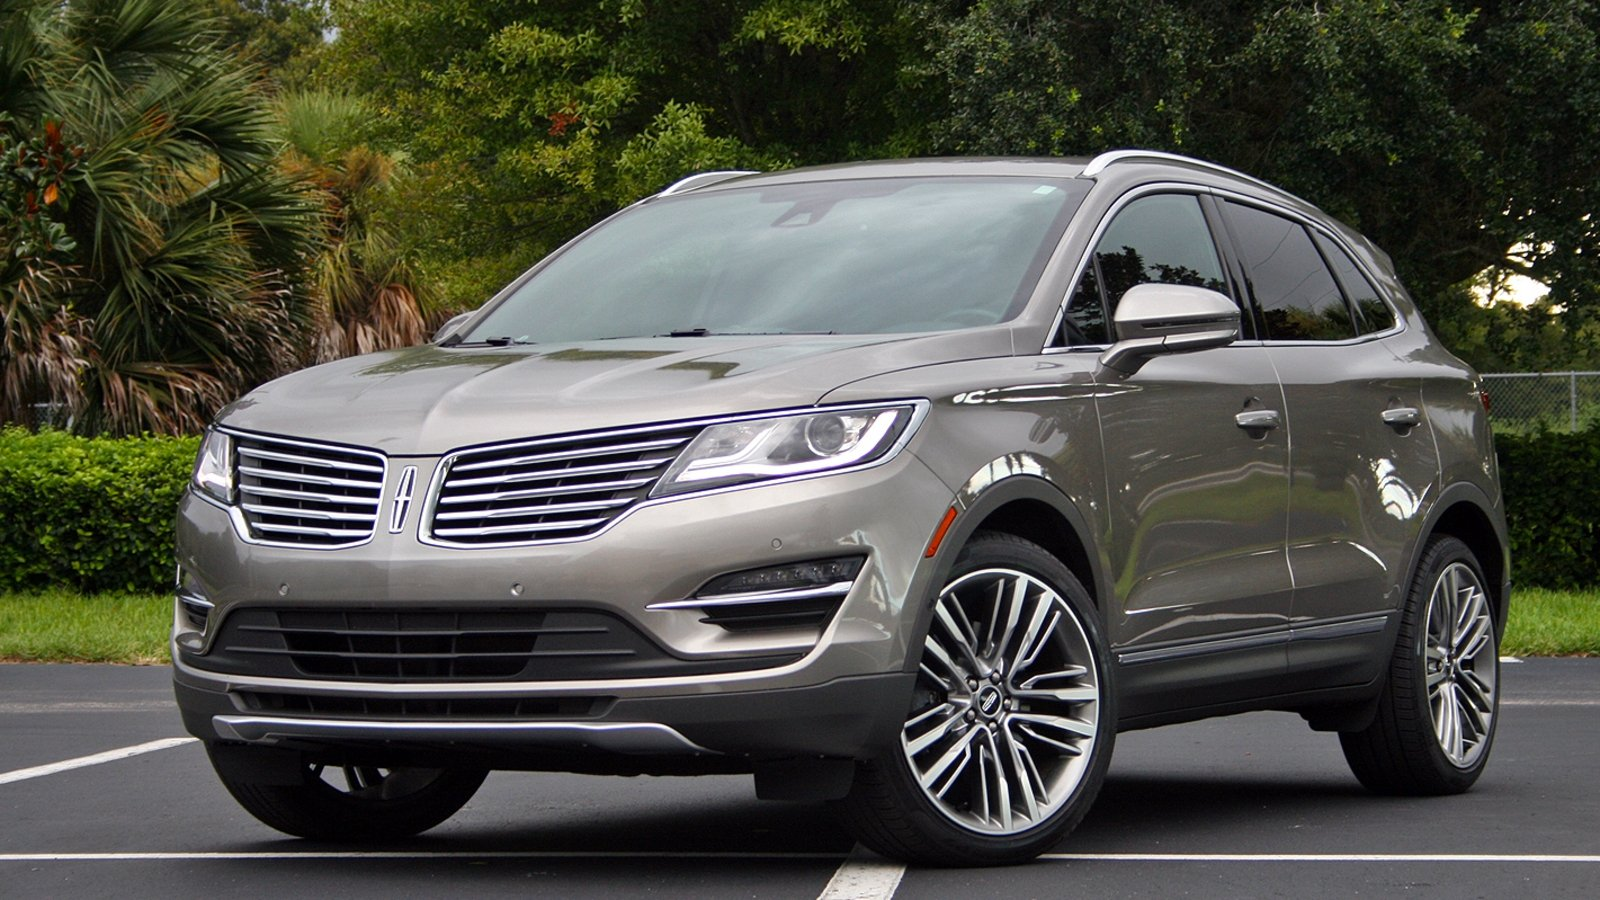 2016 Lincoln Mkc Driven Review Top Speed